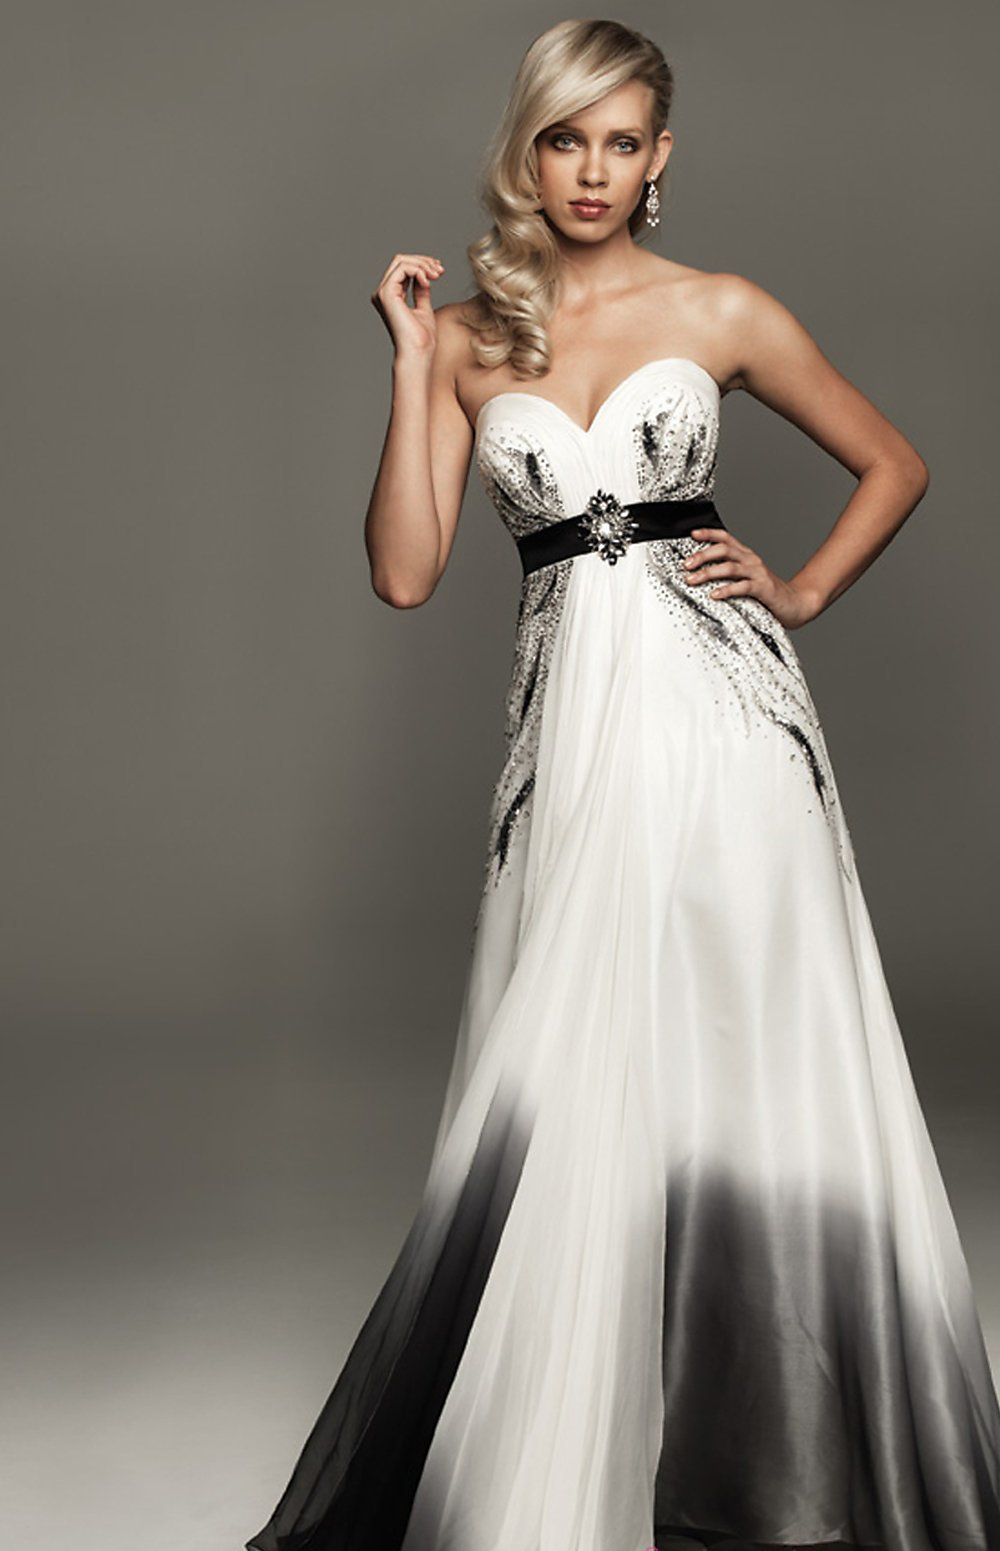 Empire waist wedding dress with beading